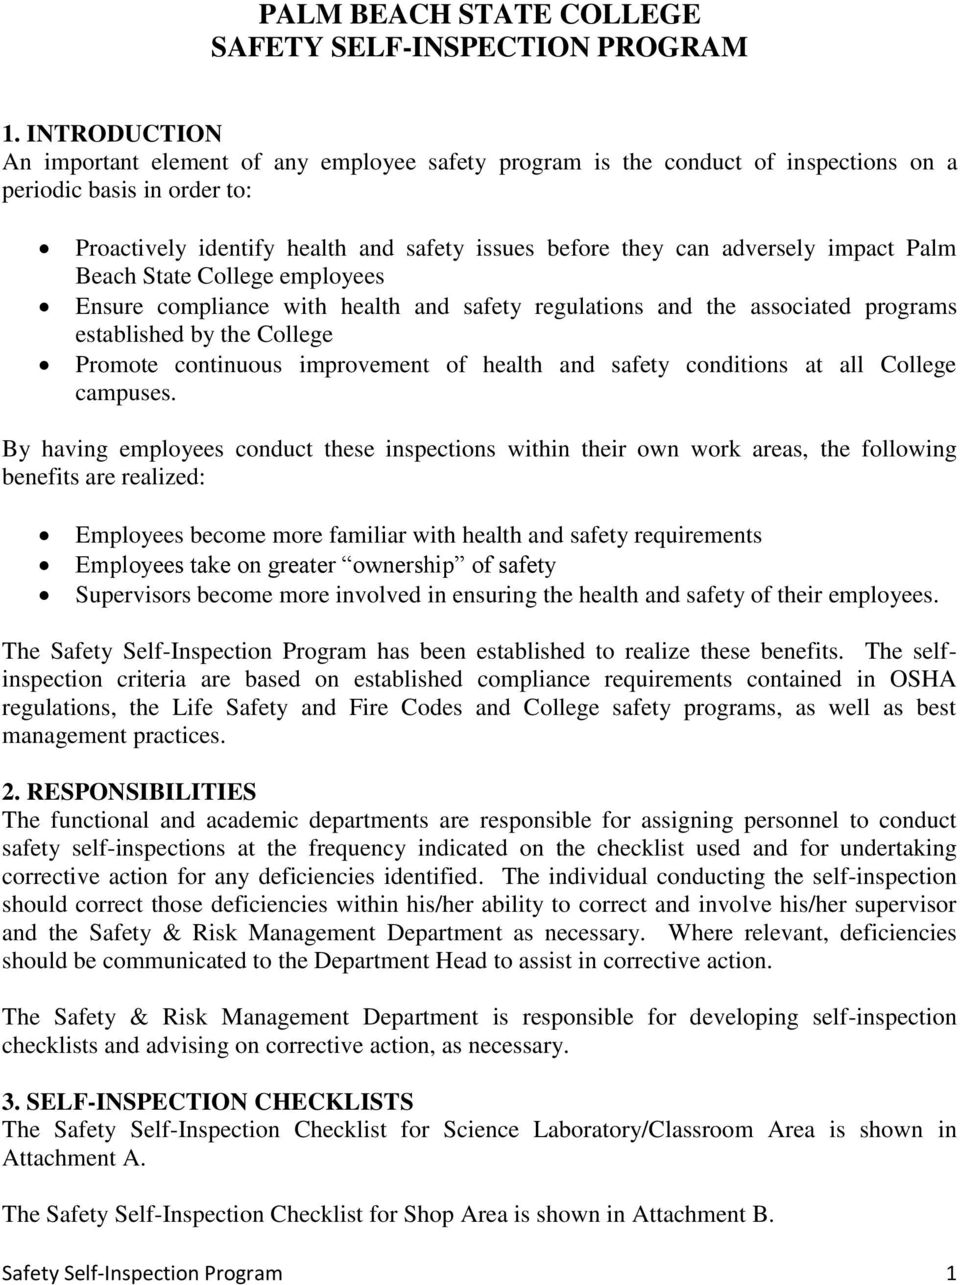 impact Palm Beach State College employees Ensure compliance with health and safety regulations and the associated programs established by the College Promote continuous improvement of health and